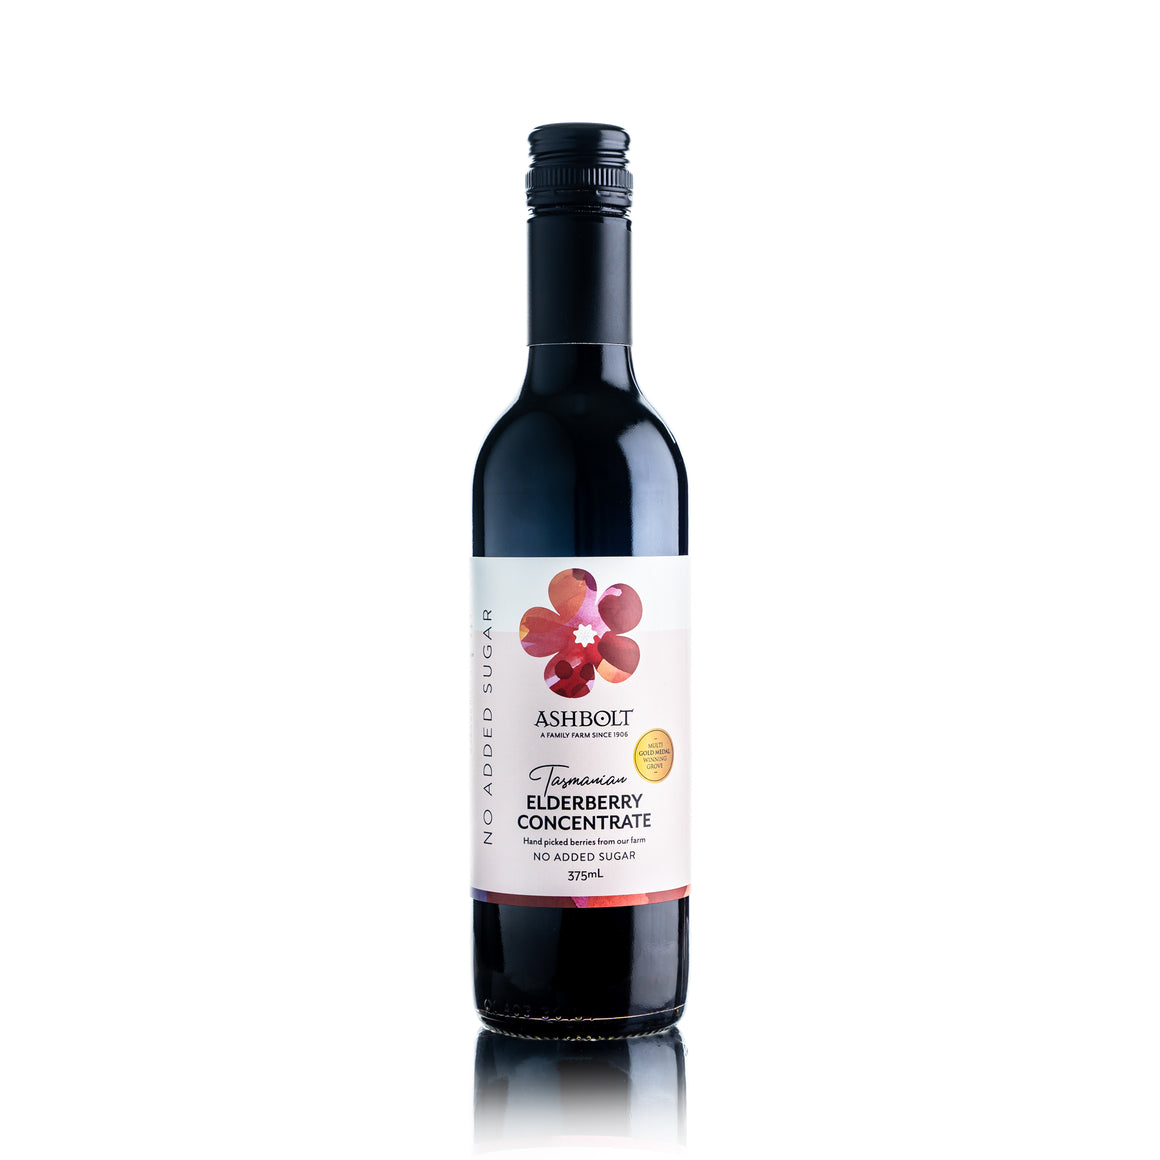 375ml Tasmanian Elderberry Concentrate no added sugar